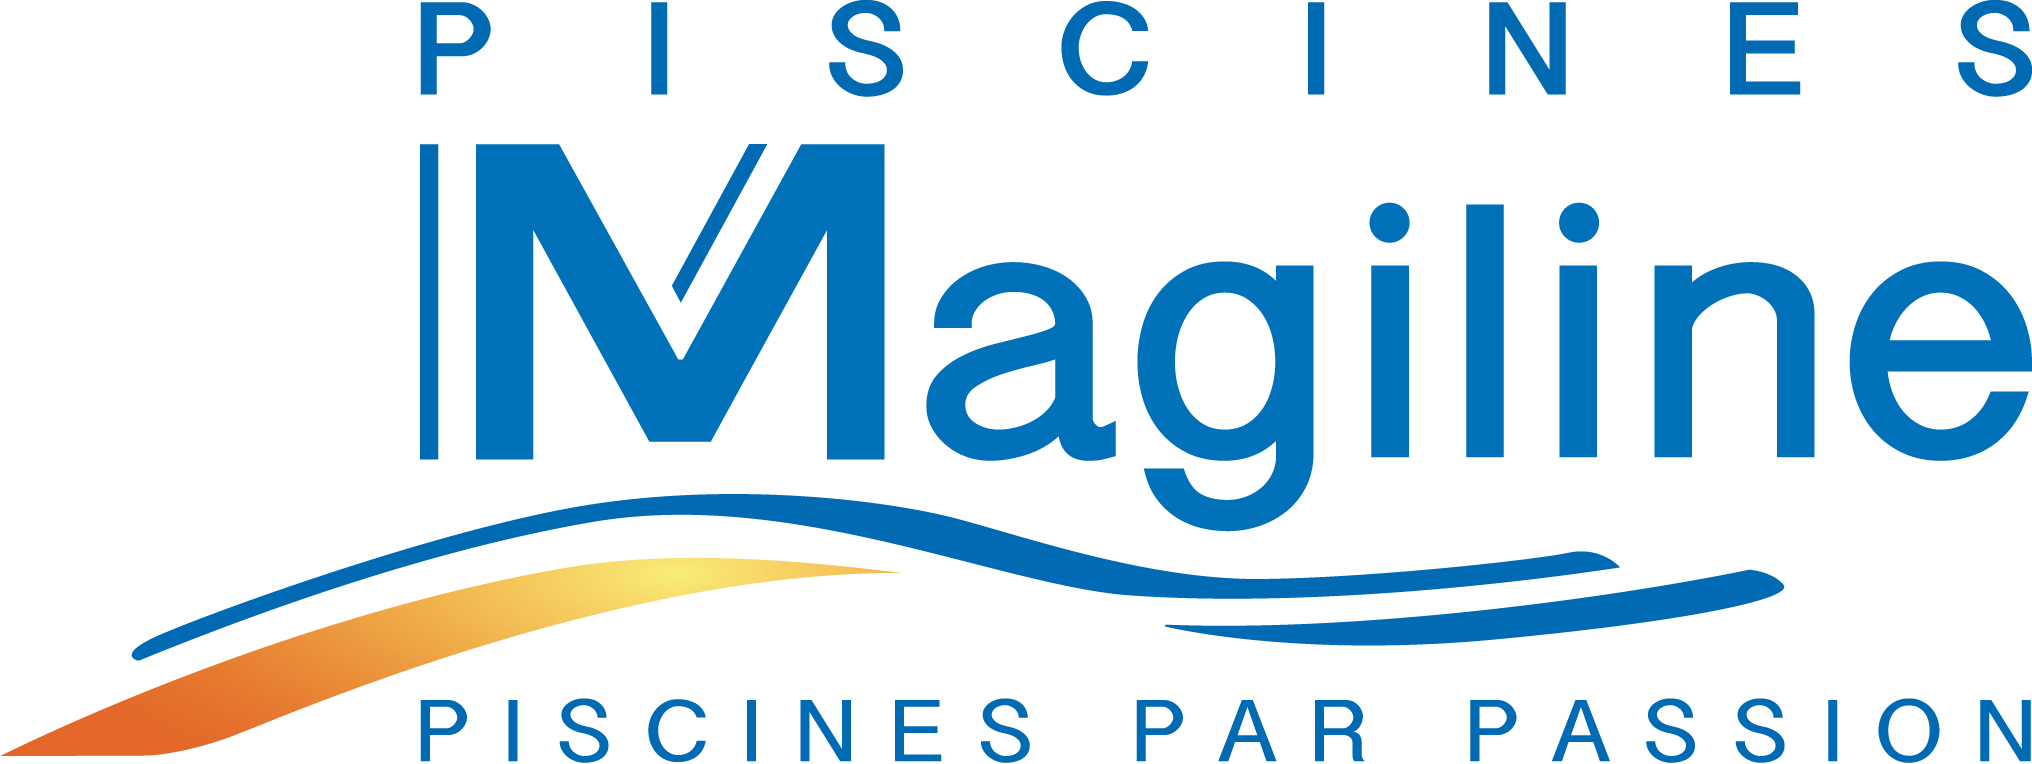 Prix piscine magiline 9 4 saint denis design for Devis piscine magiline